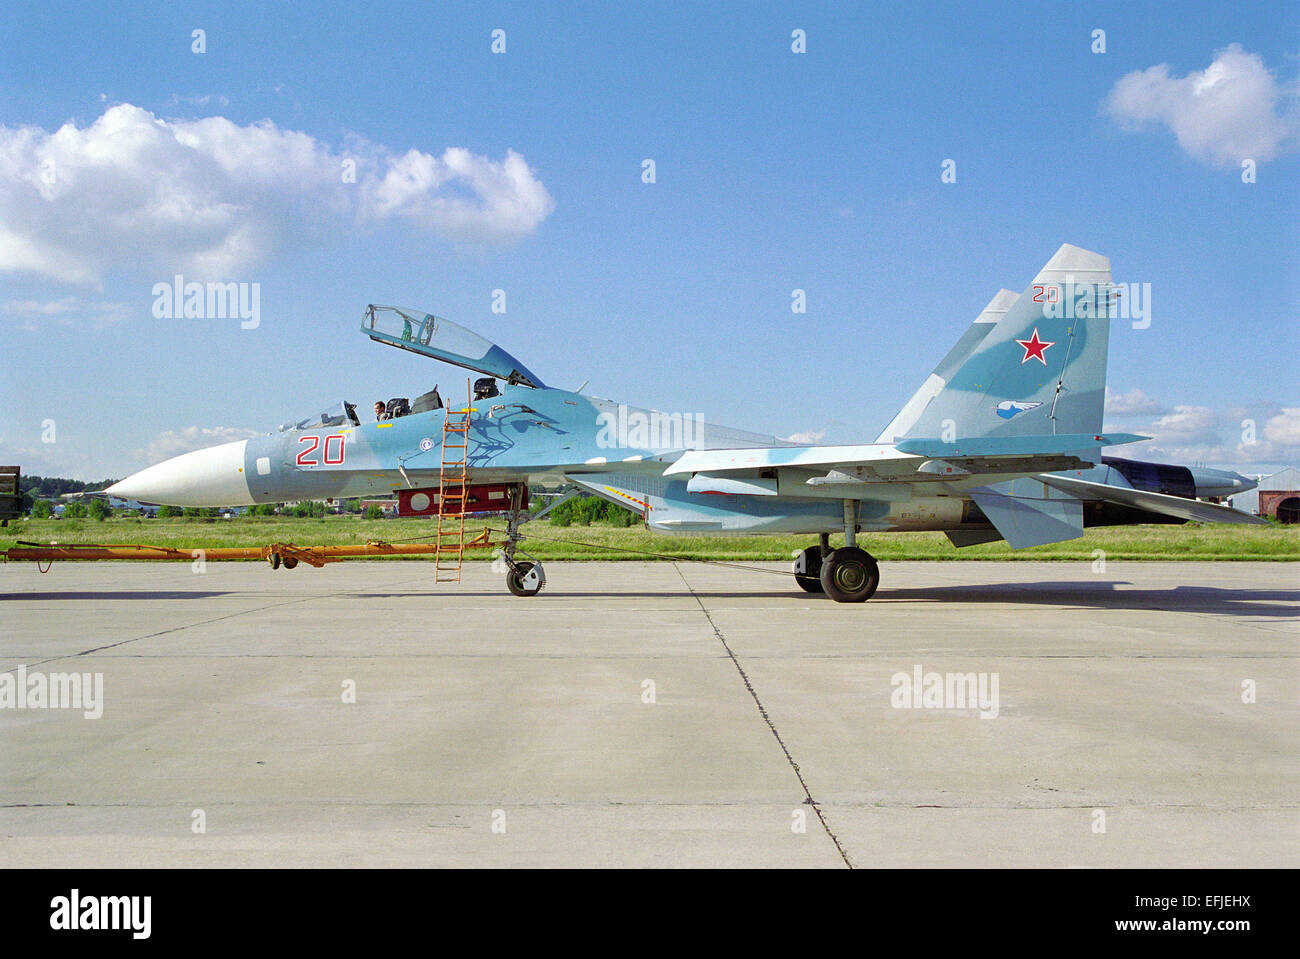 Sukhoi Su-27UB air superiority fighter Stock Photo